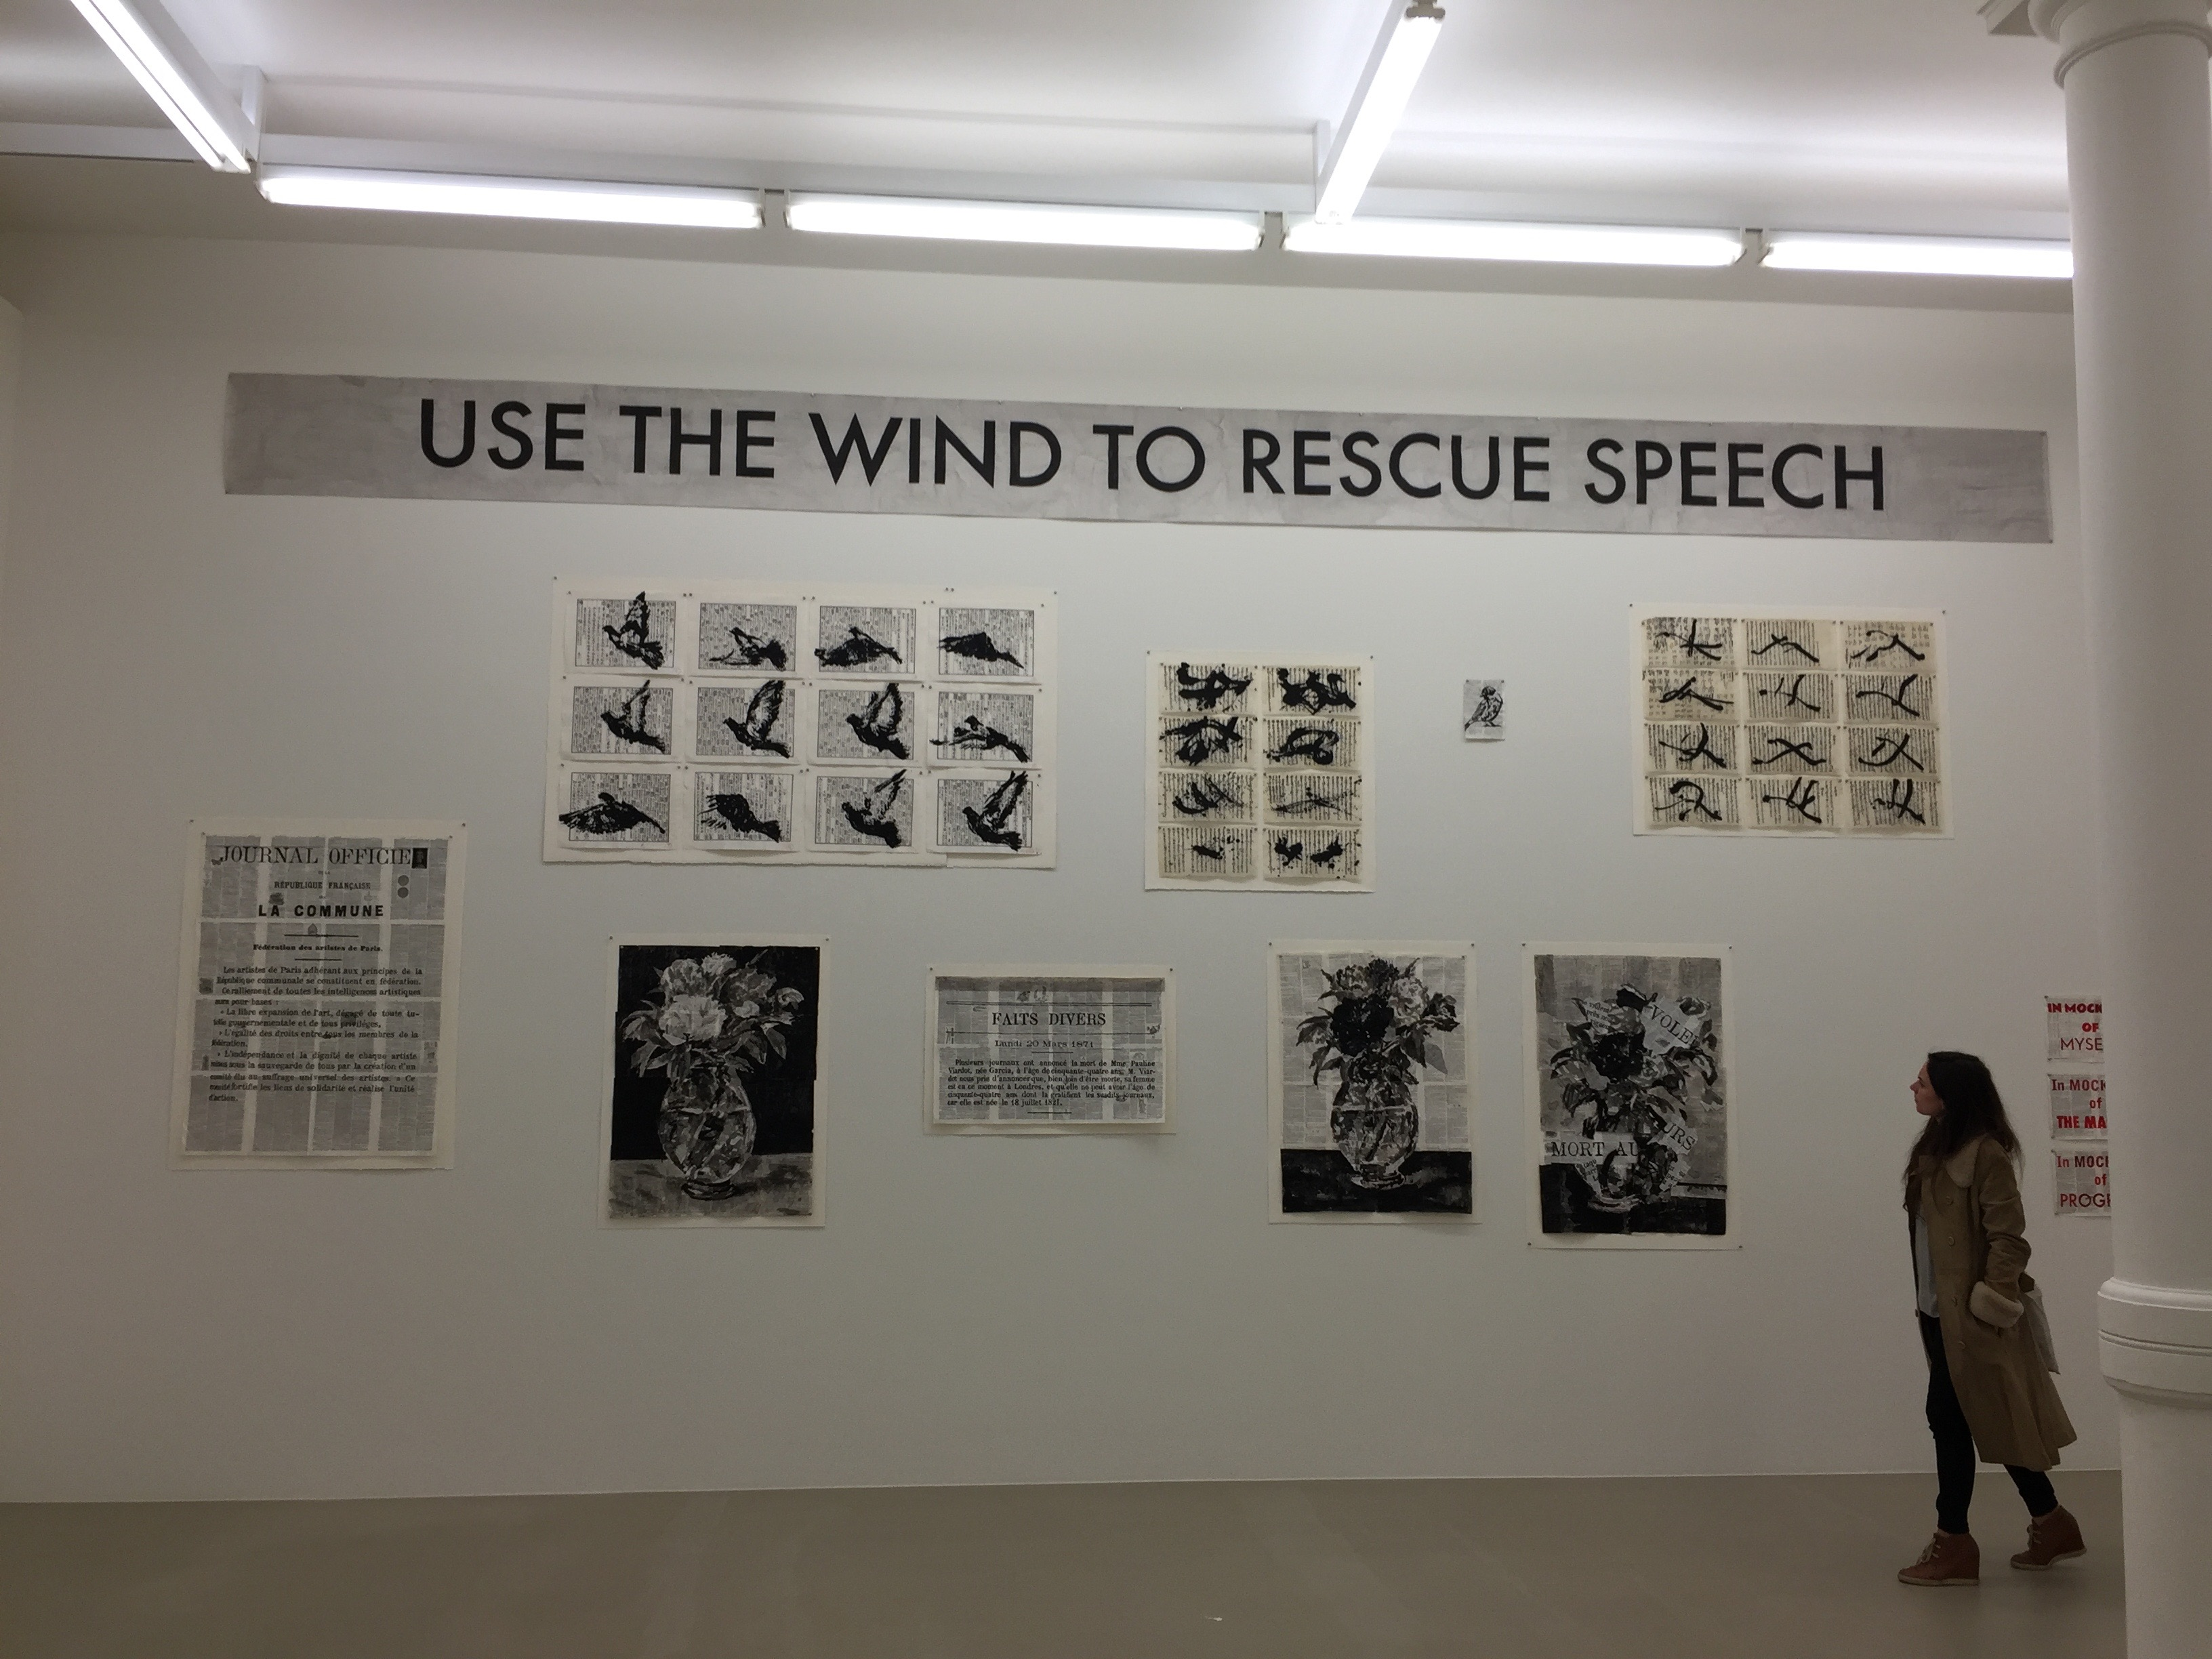 Use the Wind to Rescue Speech